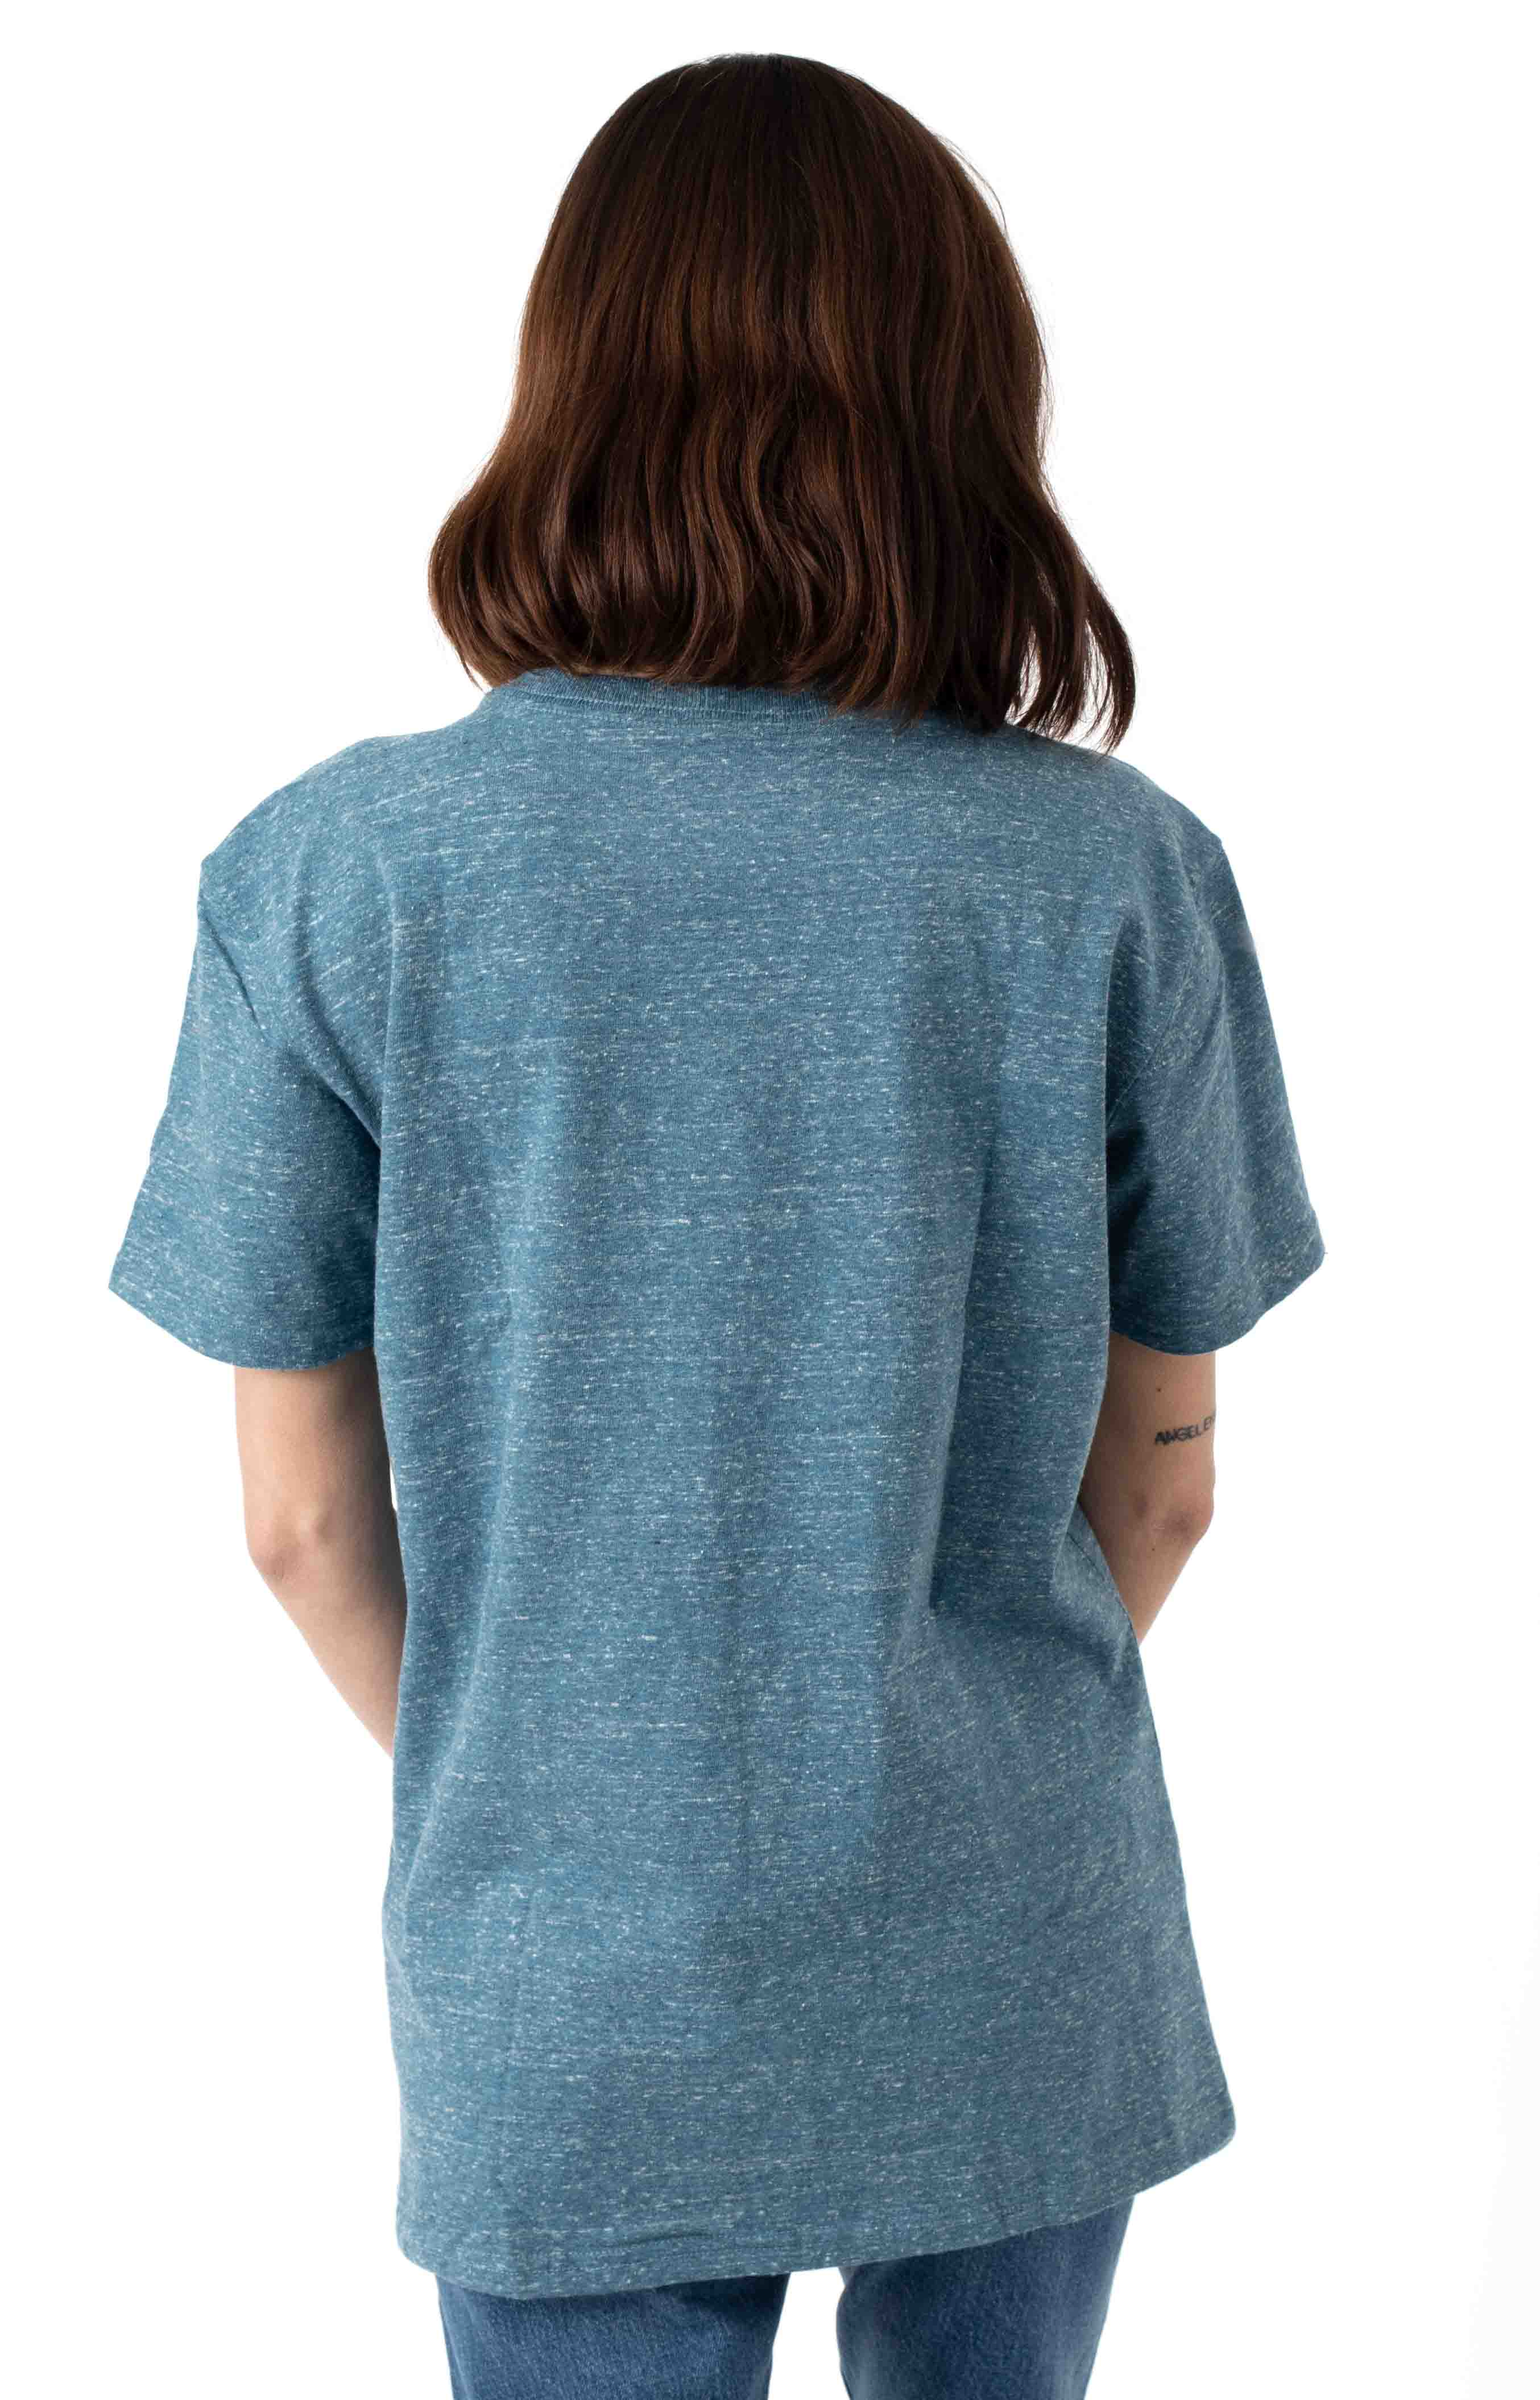 (103067) WK87 Workwear Pocket T-Shirt - Ocean Blue Snow Heather  3